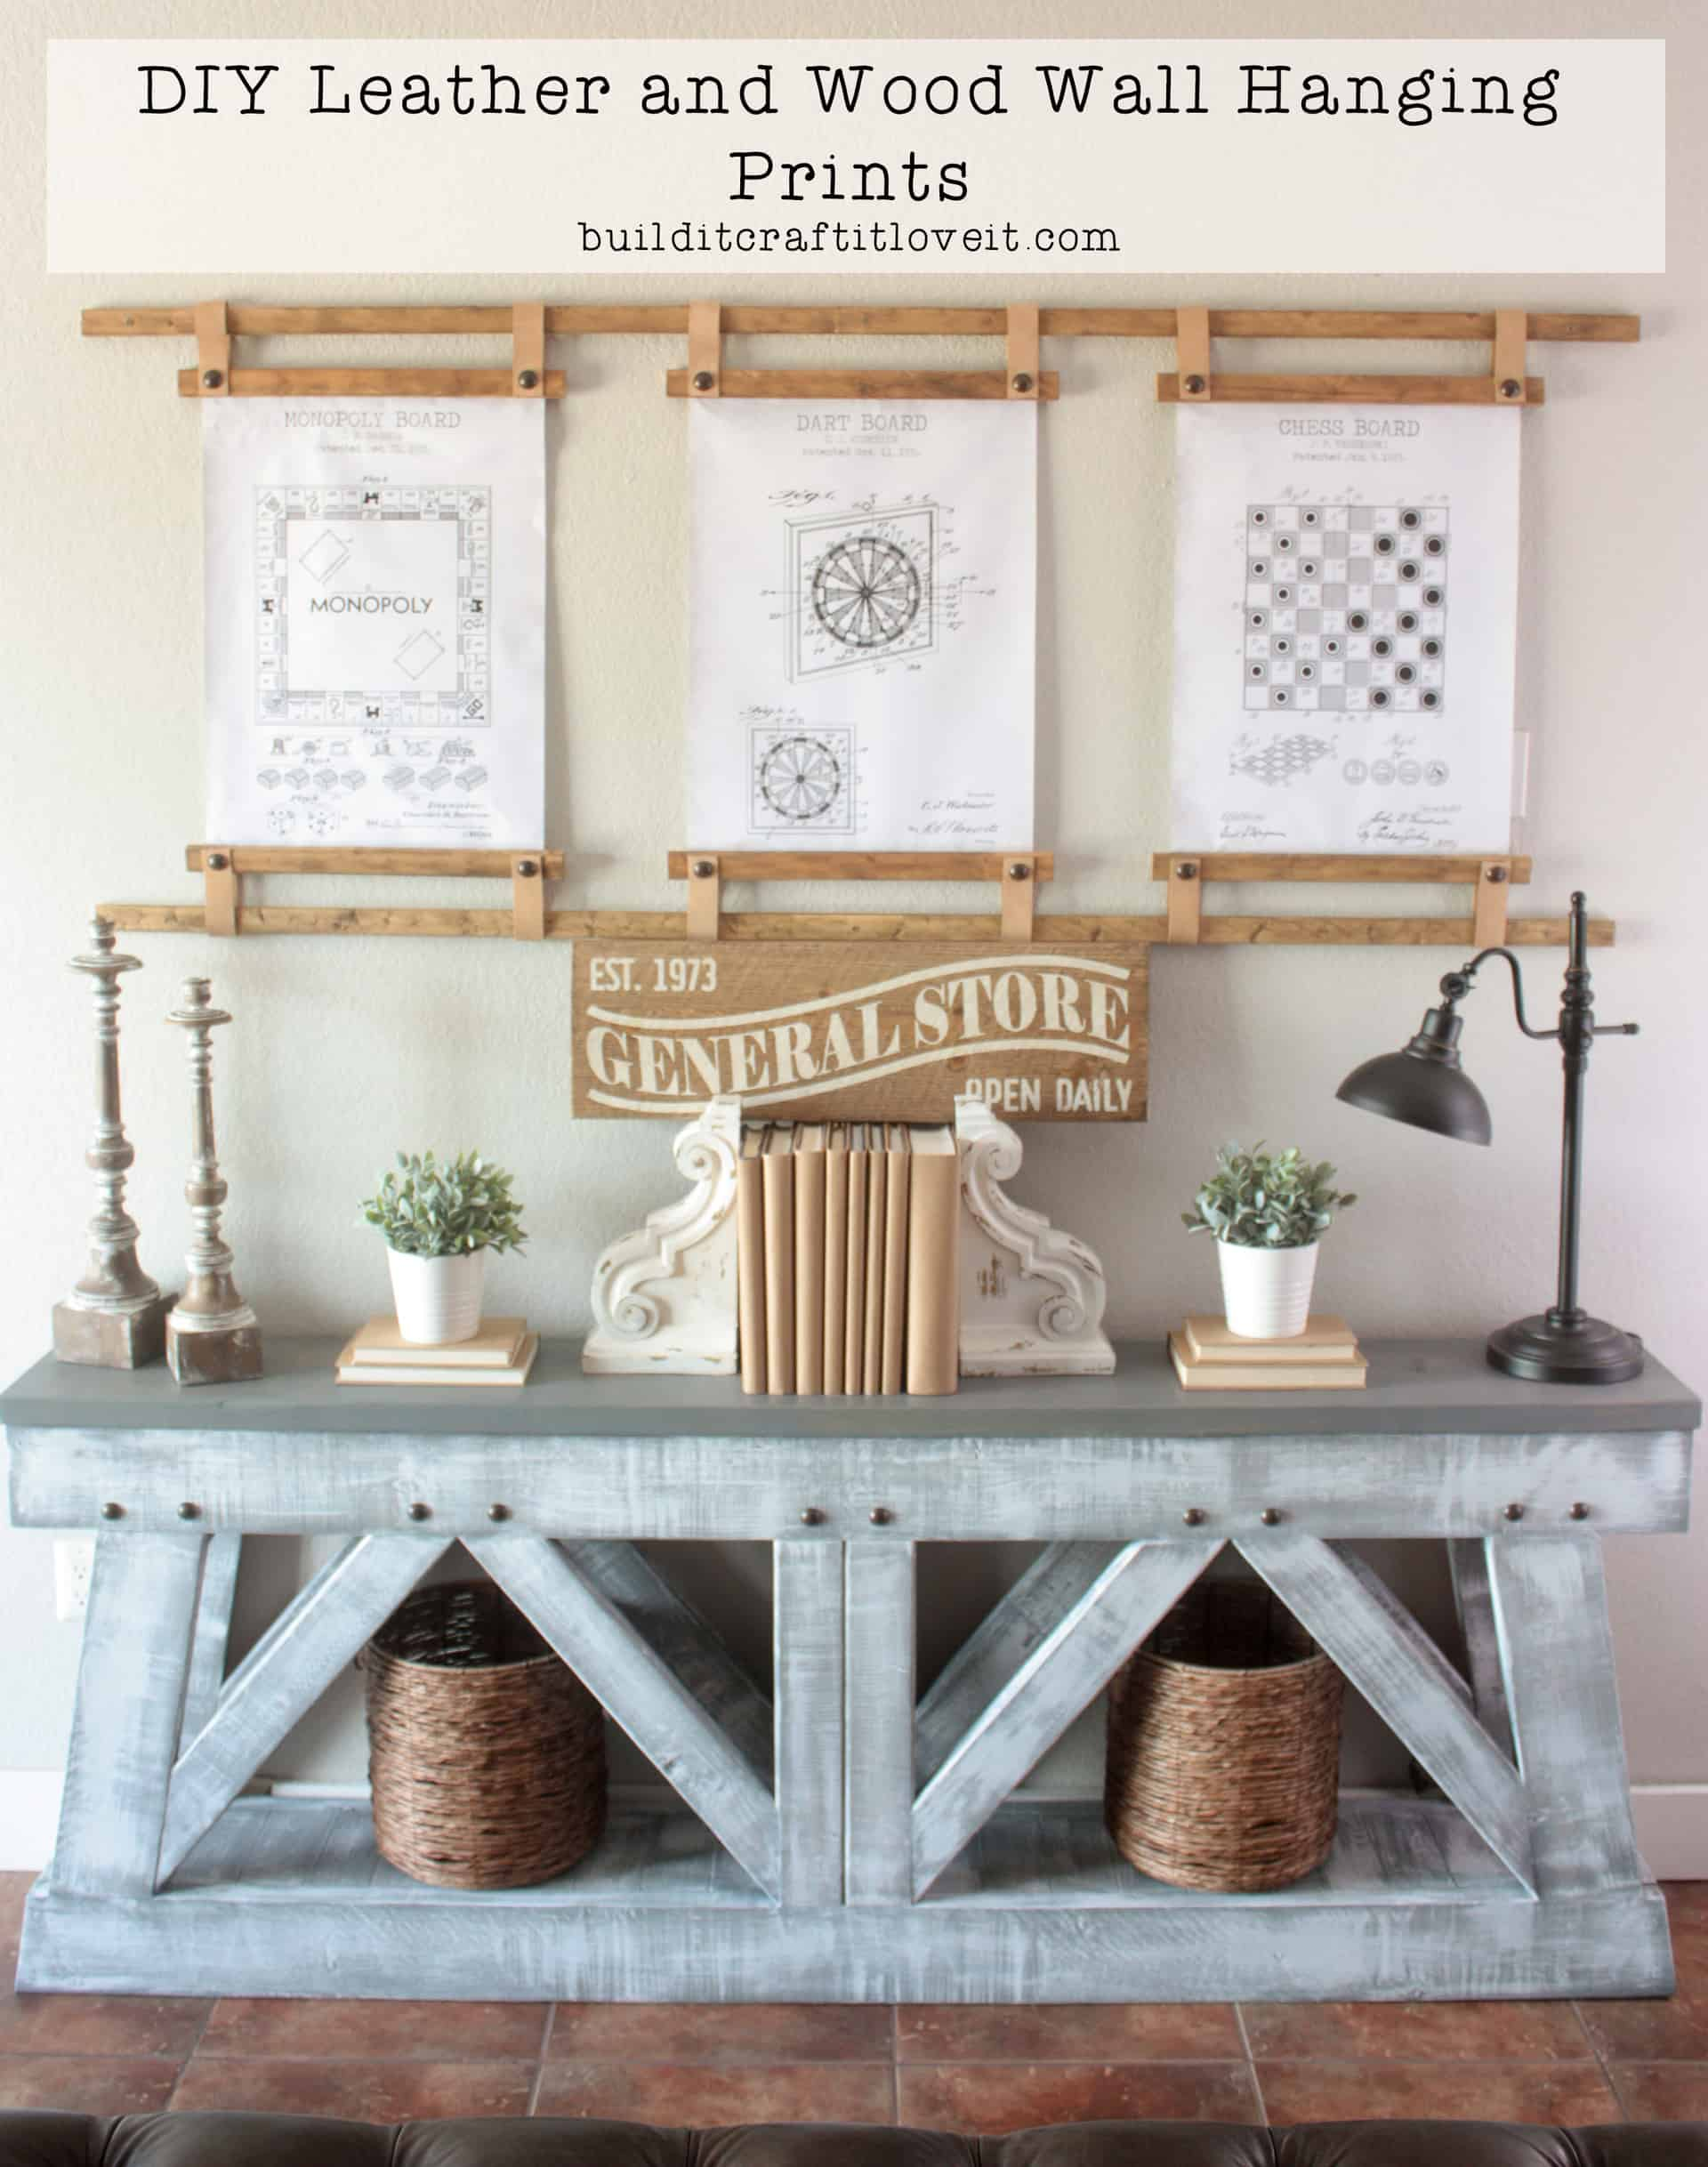 DIY Leather & Wood Wall Hanging Frames